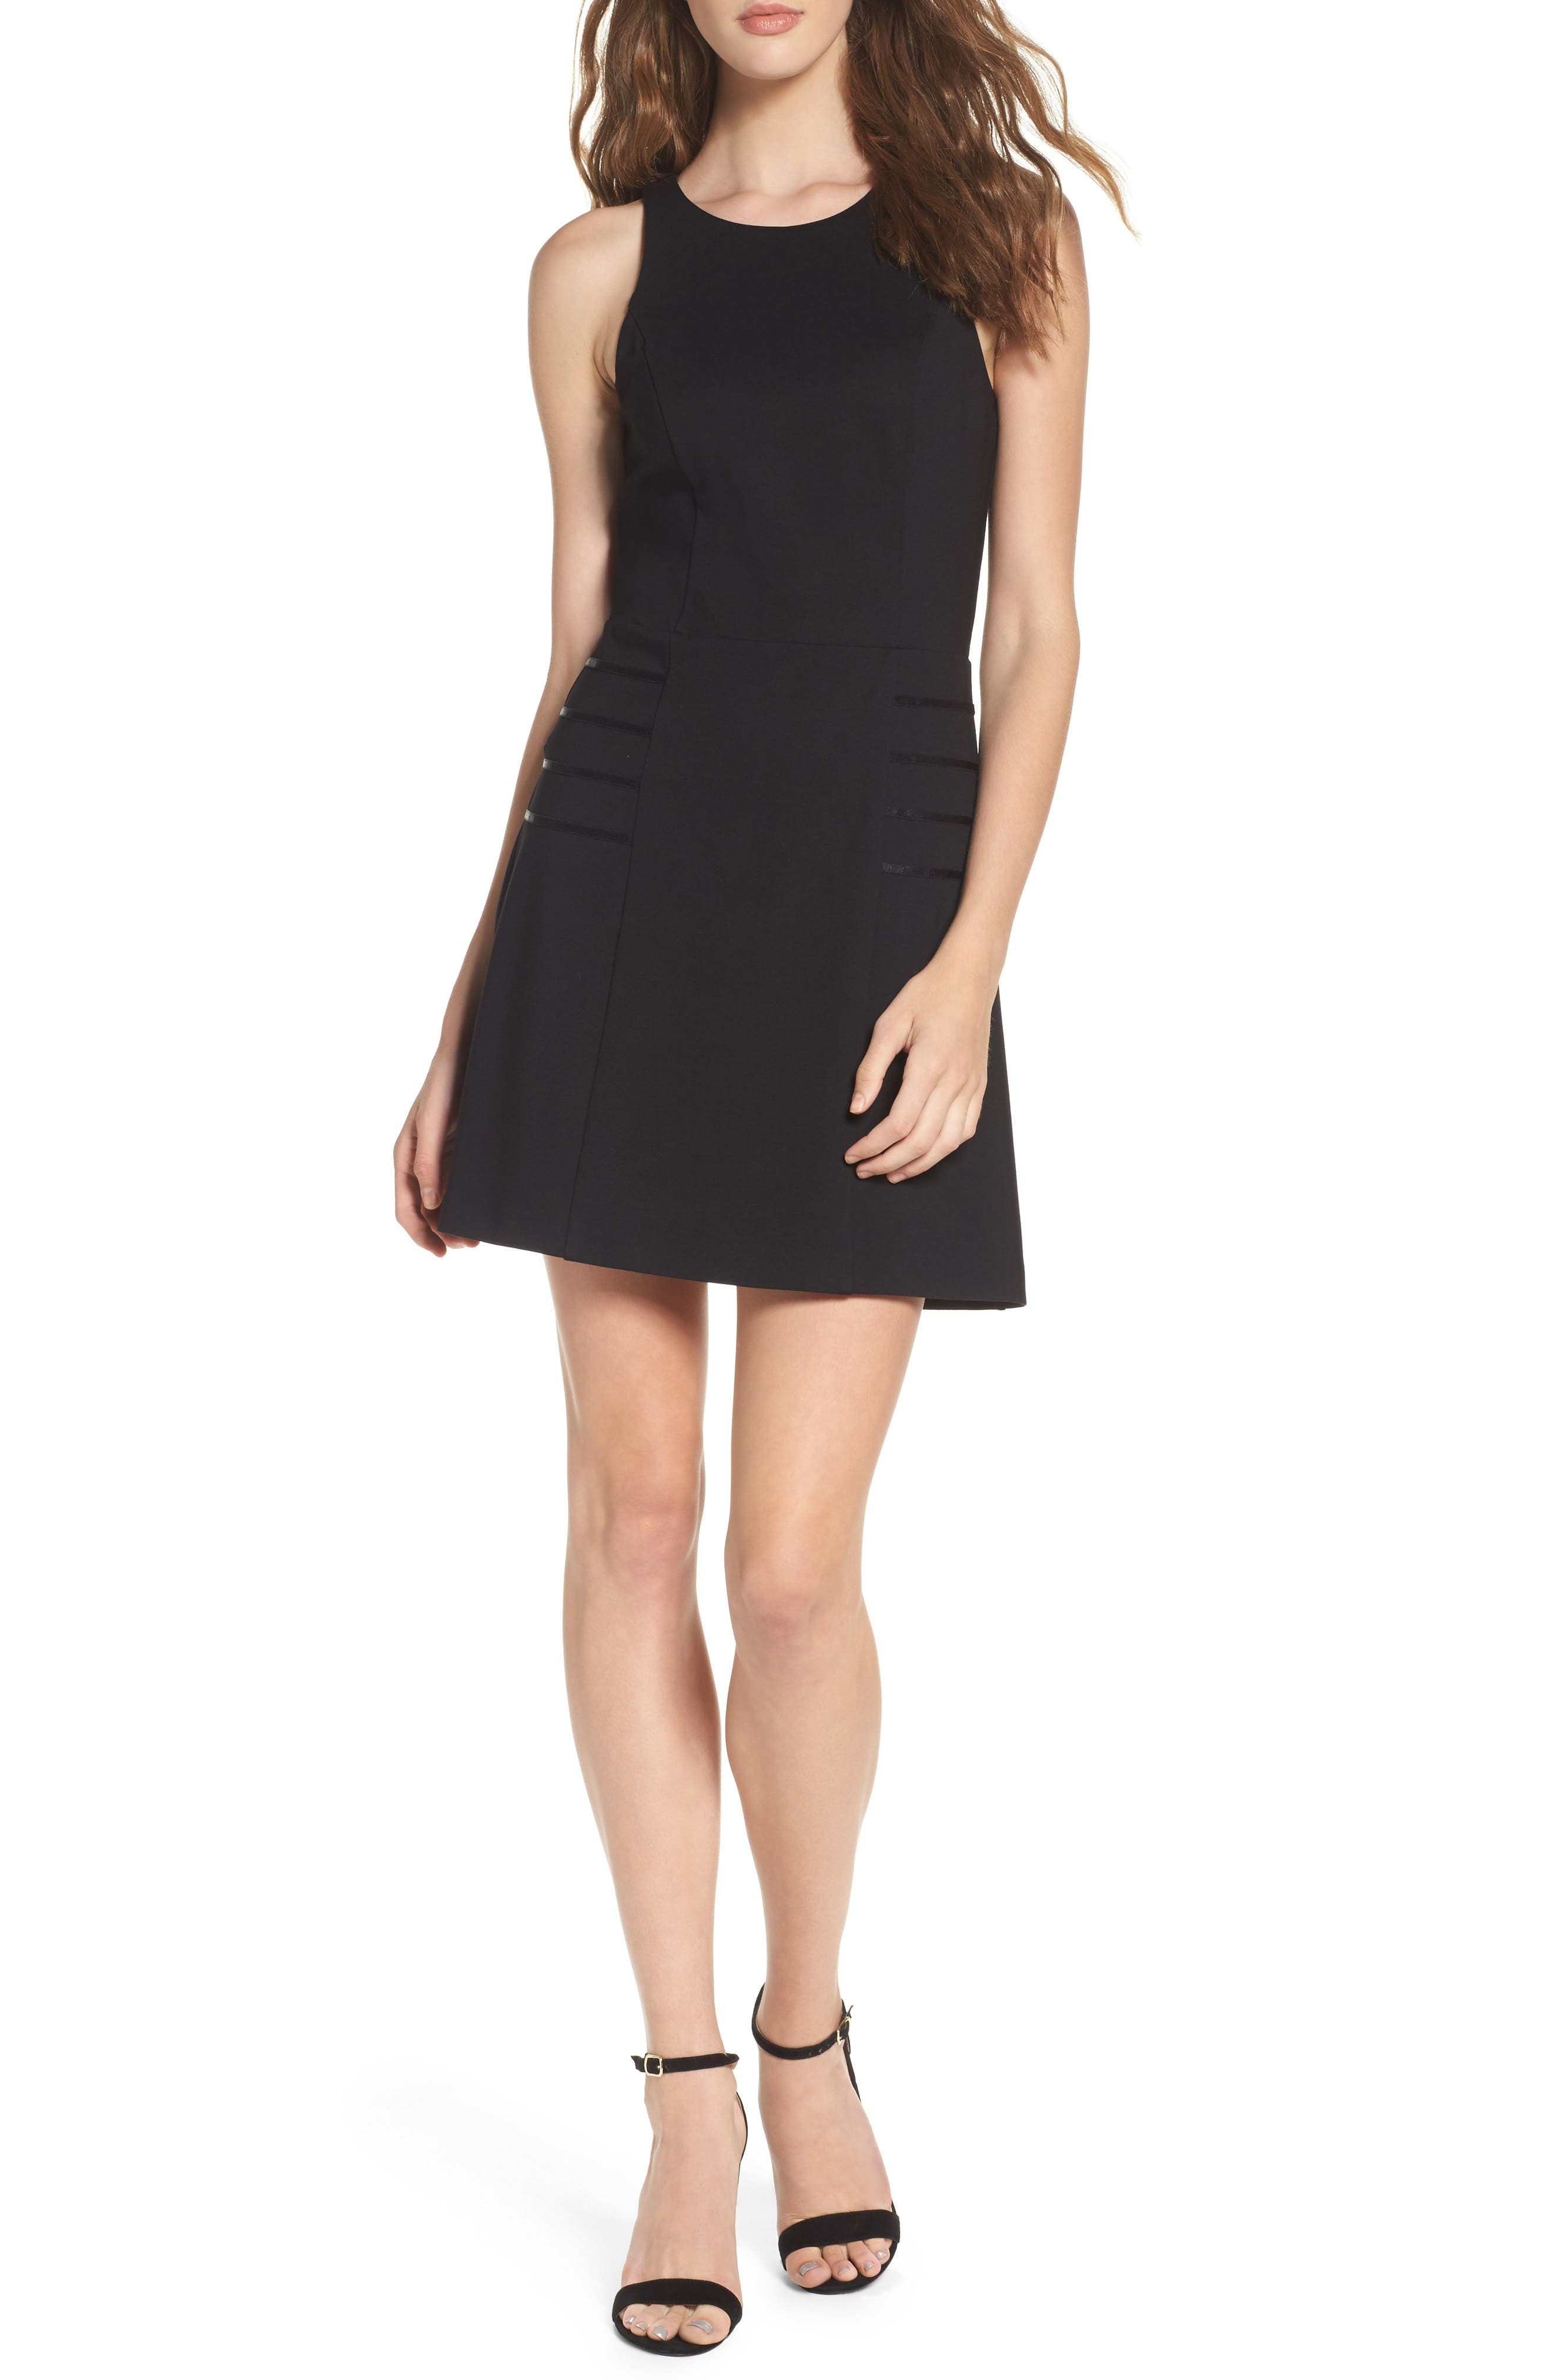 Imma Do Me Minidress,                         Main,                         color, Black